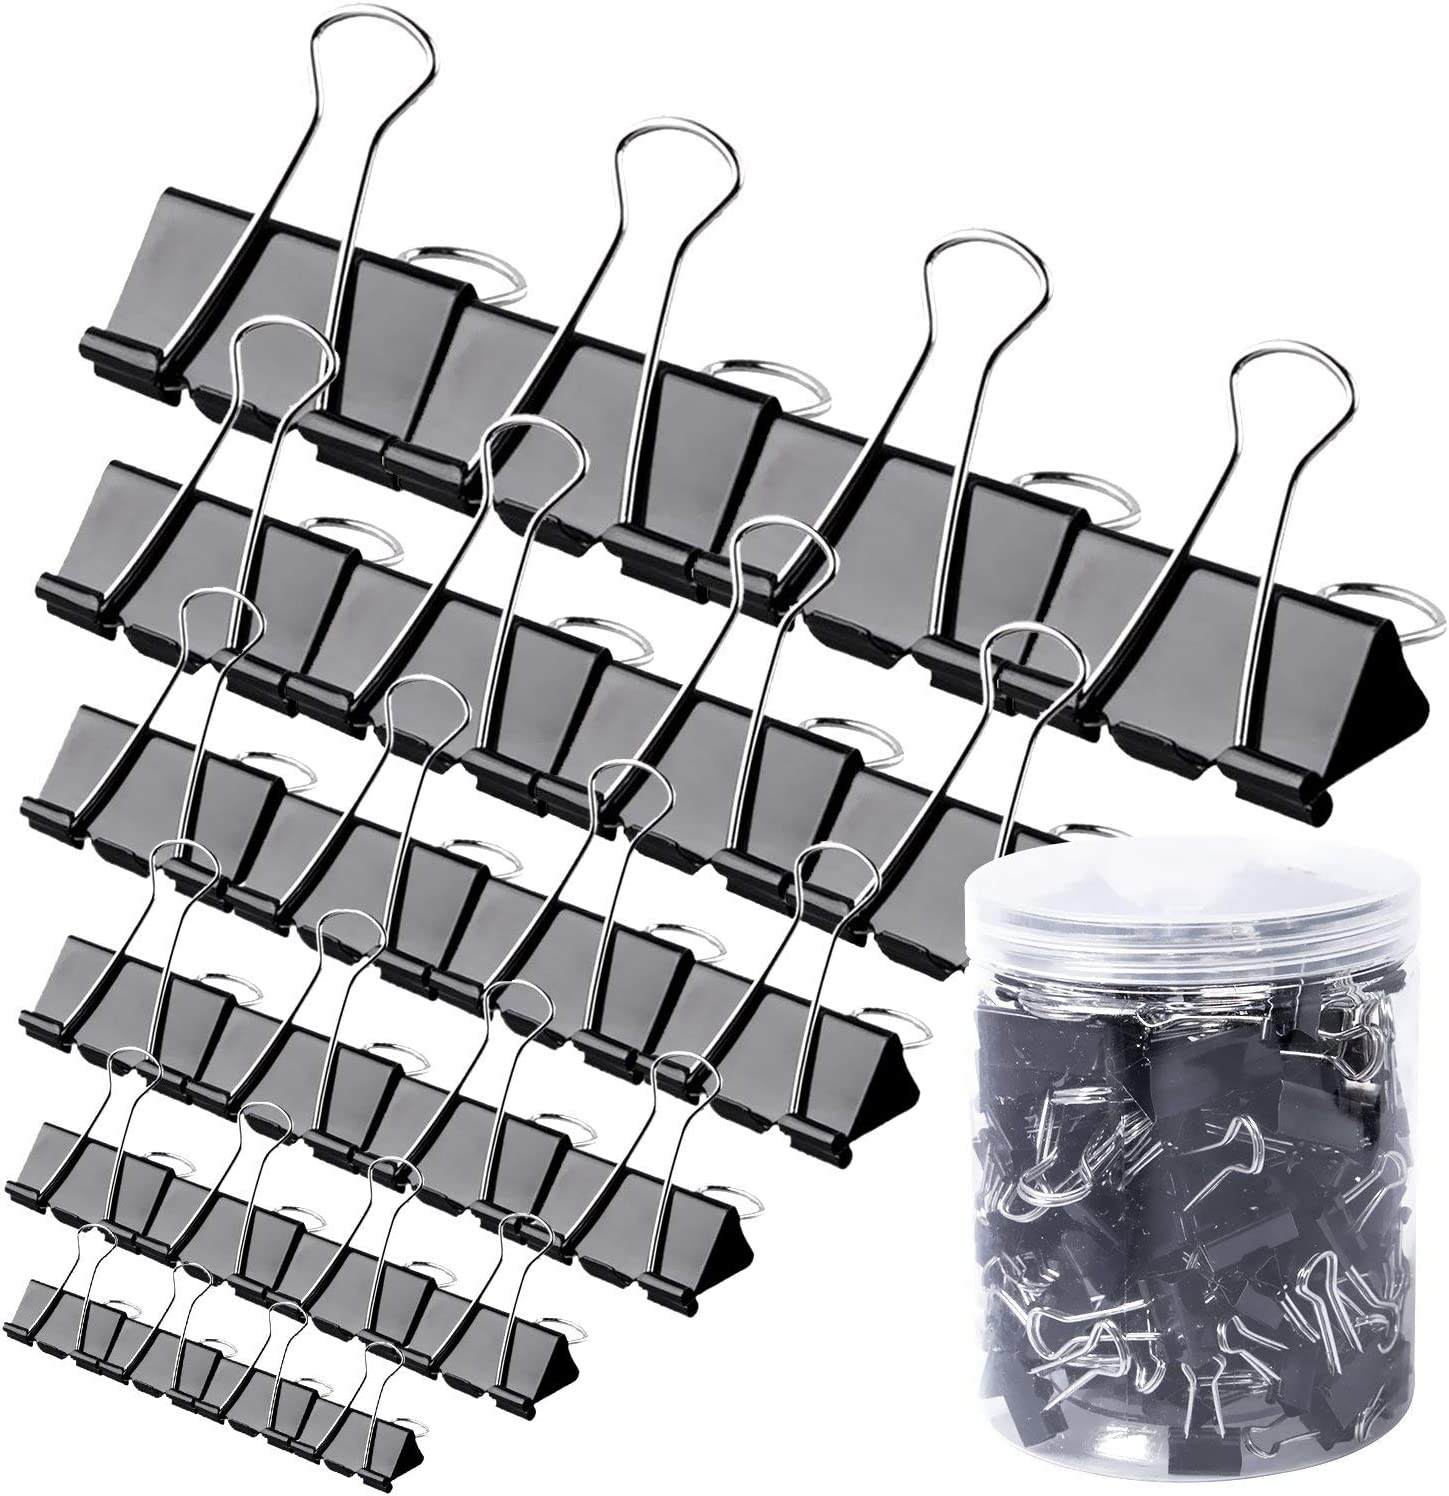 120Pcs Binder Clips - Paper Clamps Assorted 6 Sizes, Paper Binder Clips, Metal Fold Back Clips with Box for Office, School and Home Supplies, Black